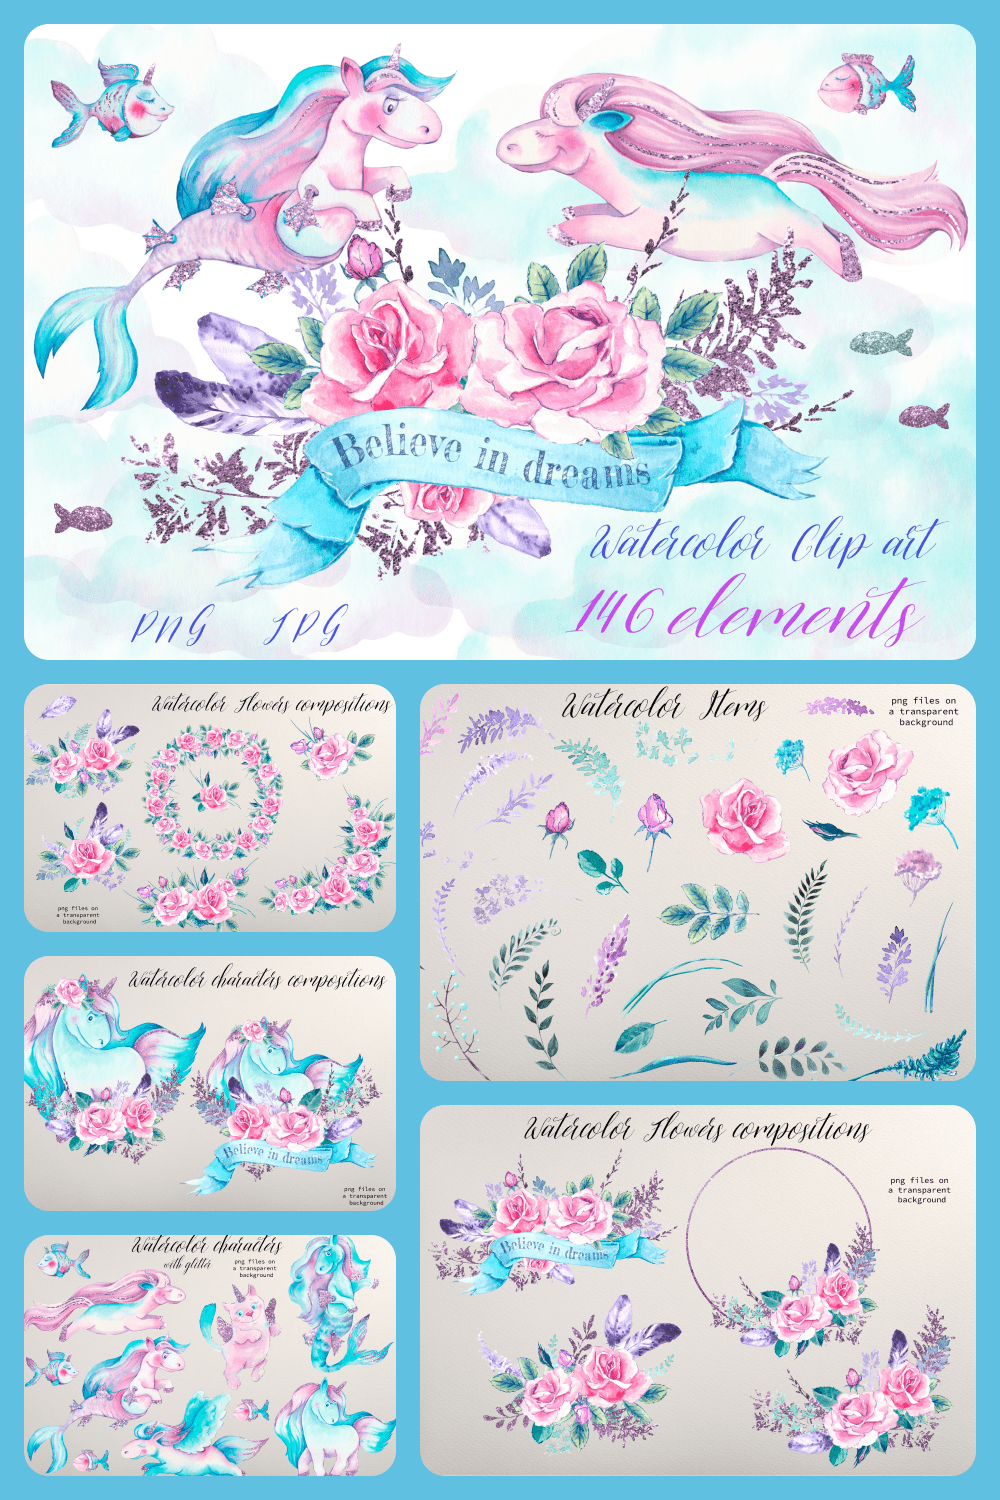 Delicate unicorn style in blue color with flowers and fish.